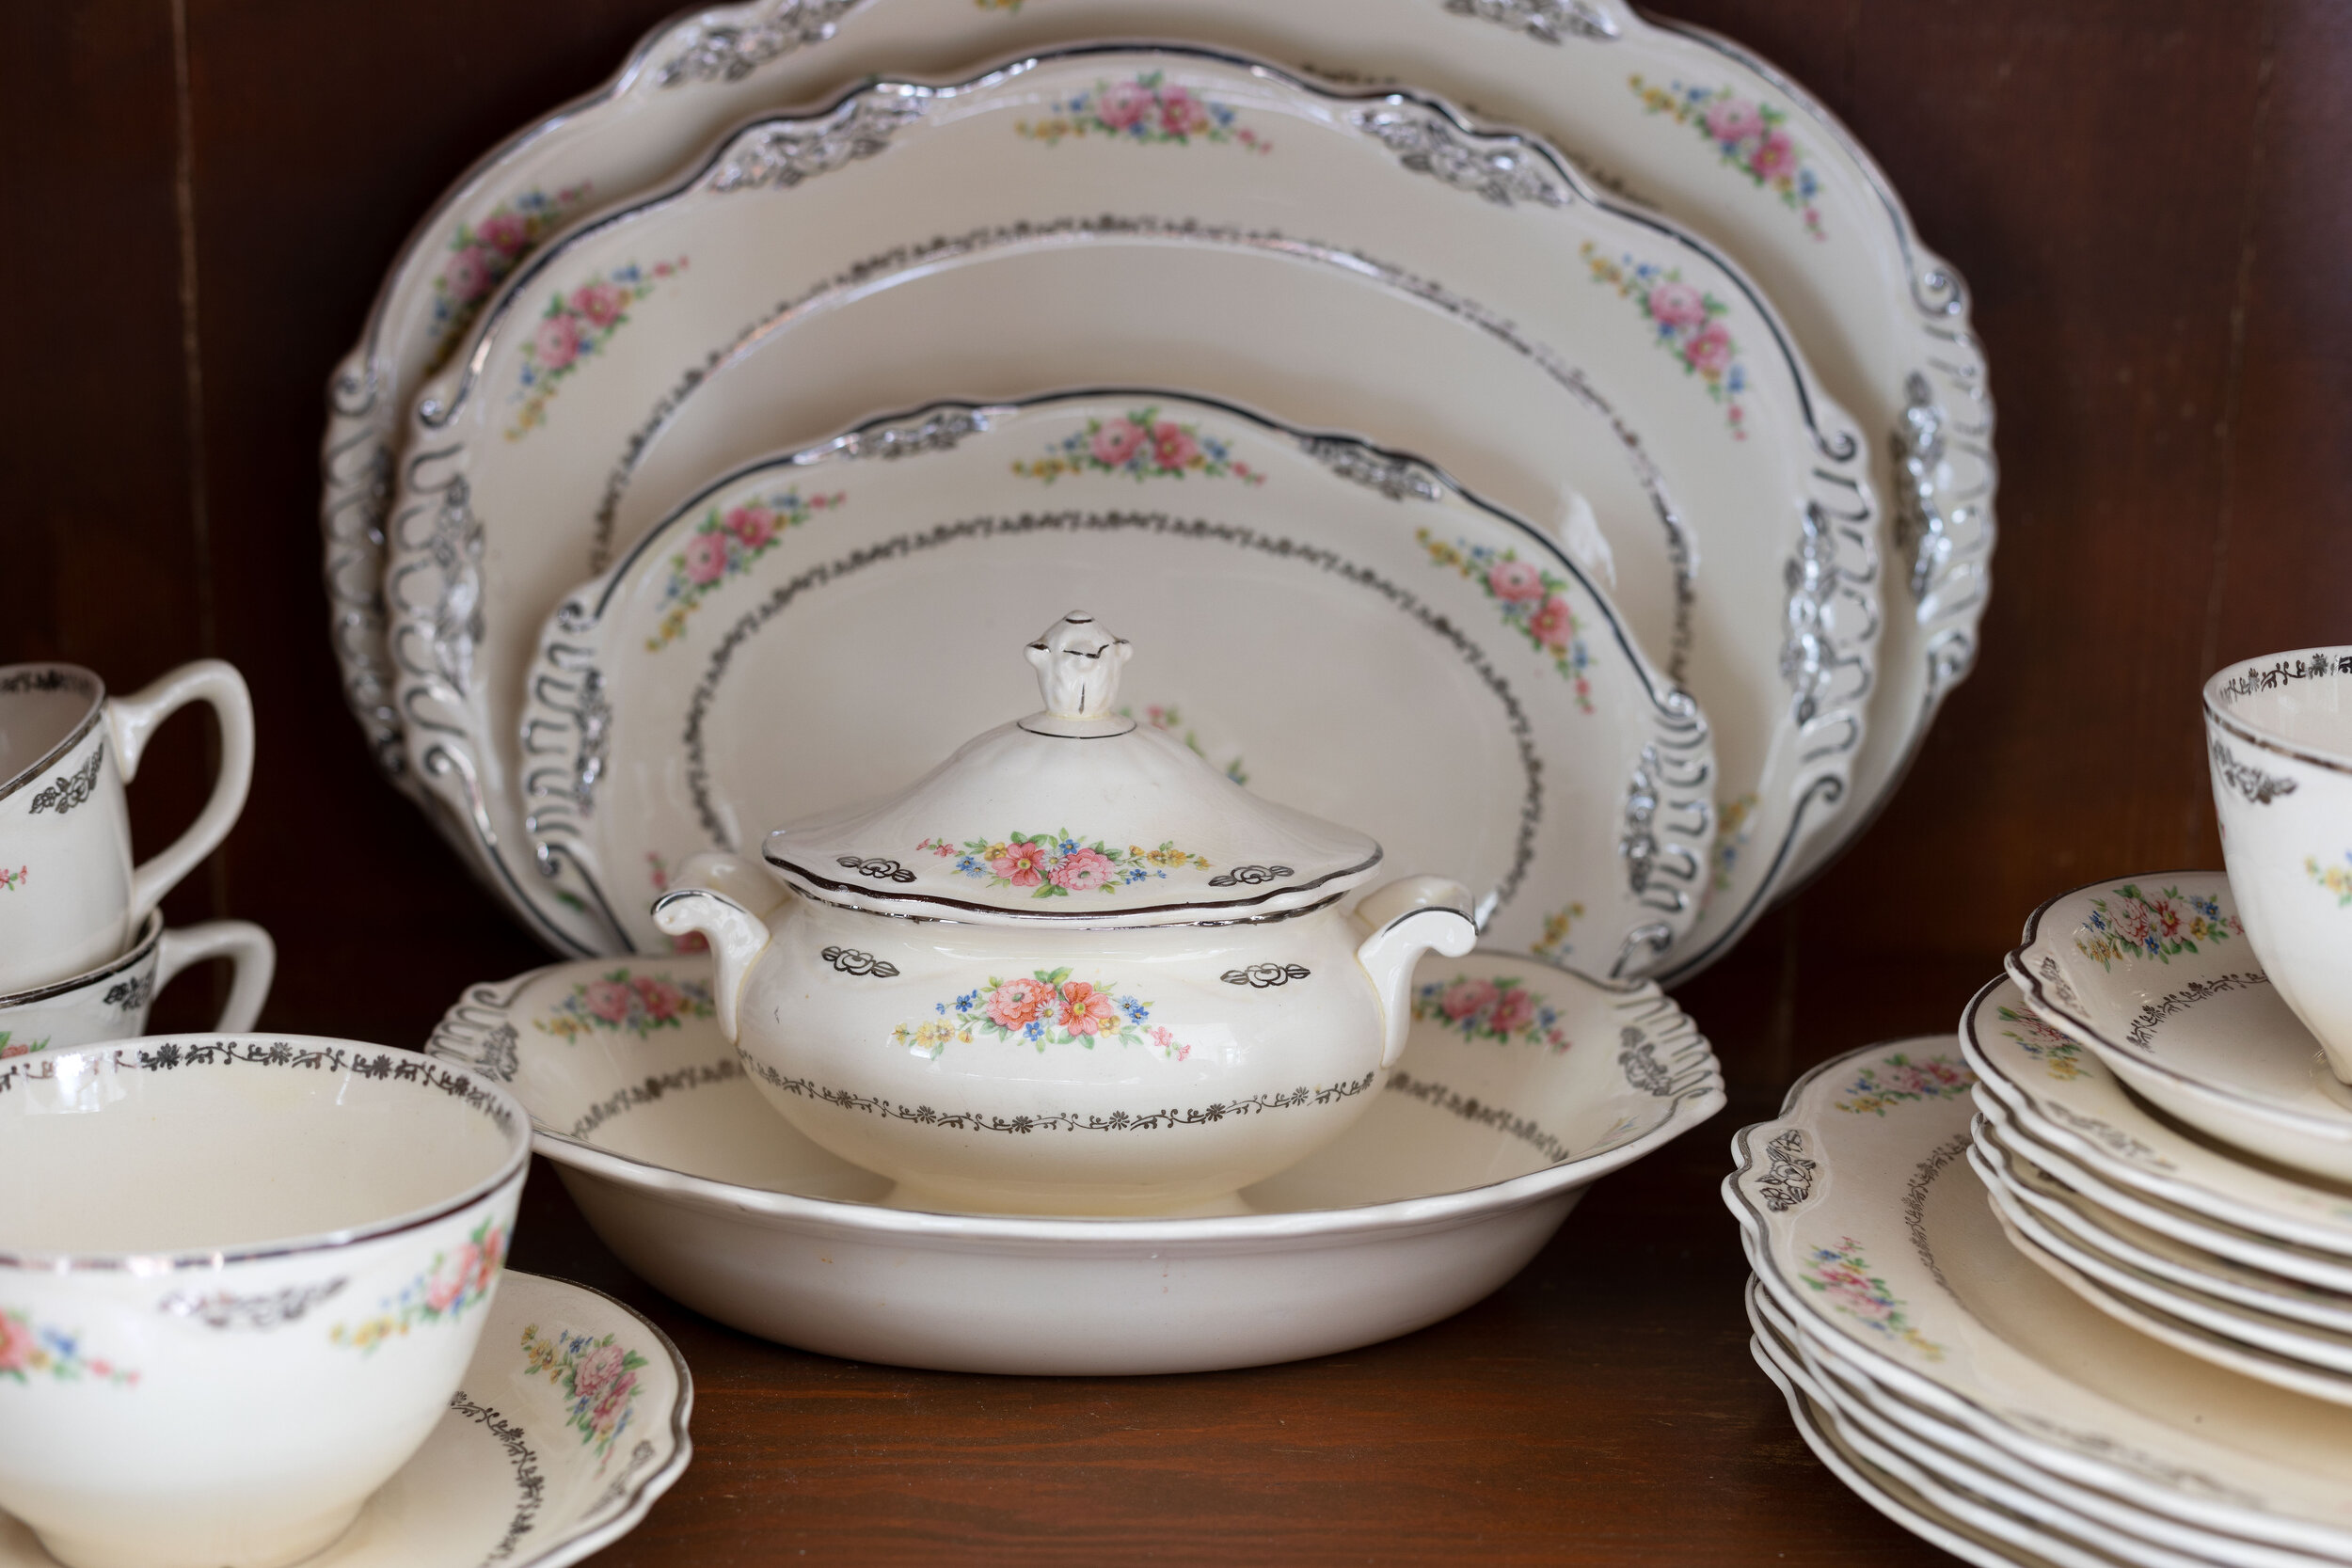 my great grandmother's china tea service (it's over 100 years old!) on www.thegritandpolish.com